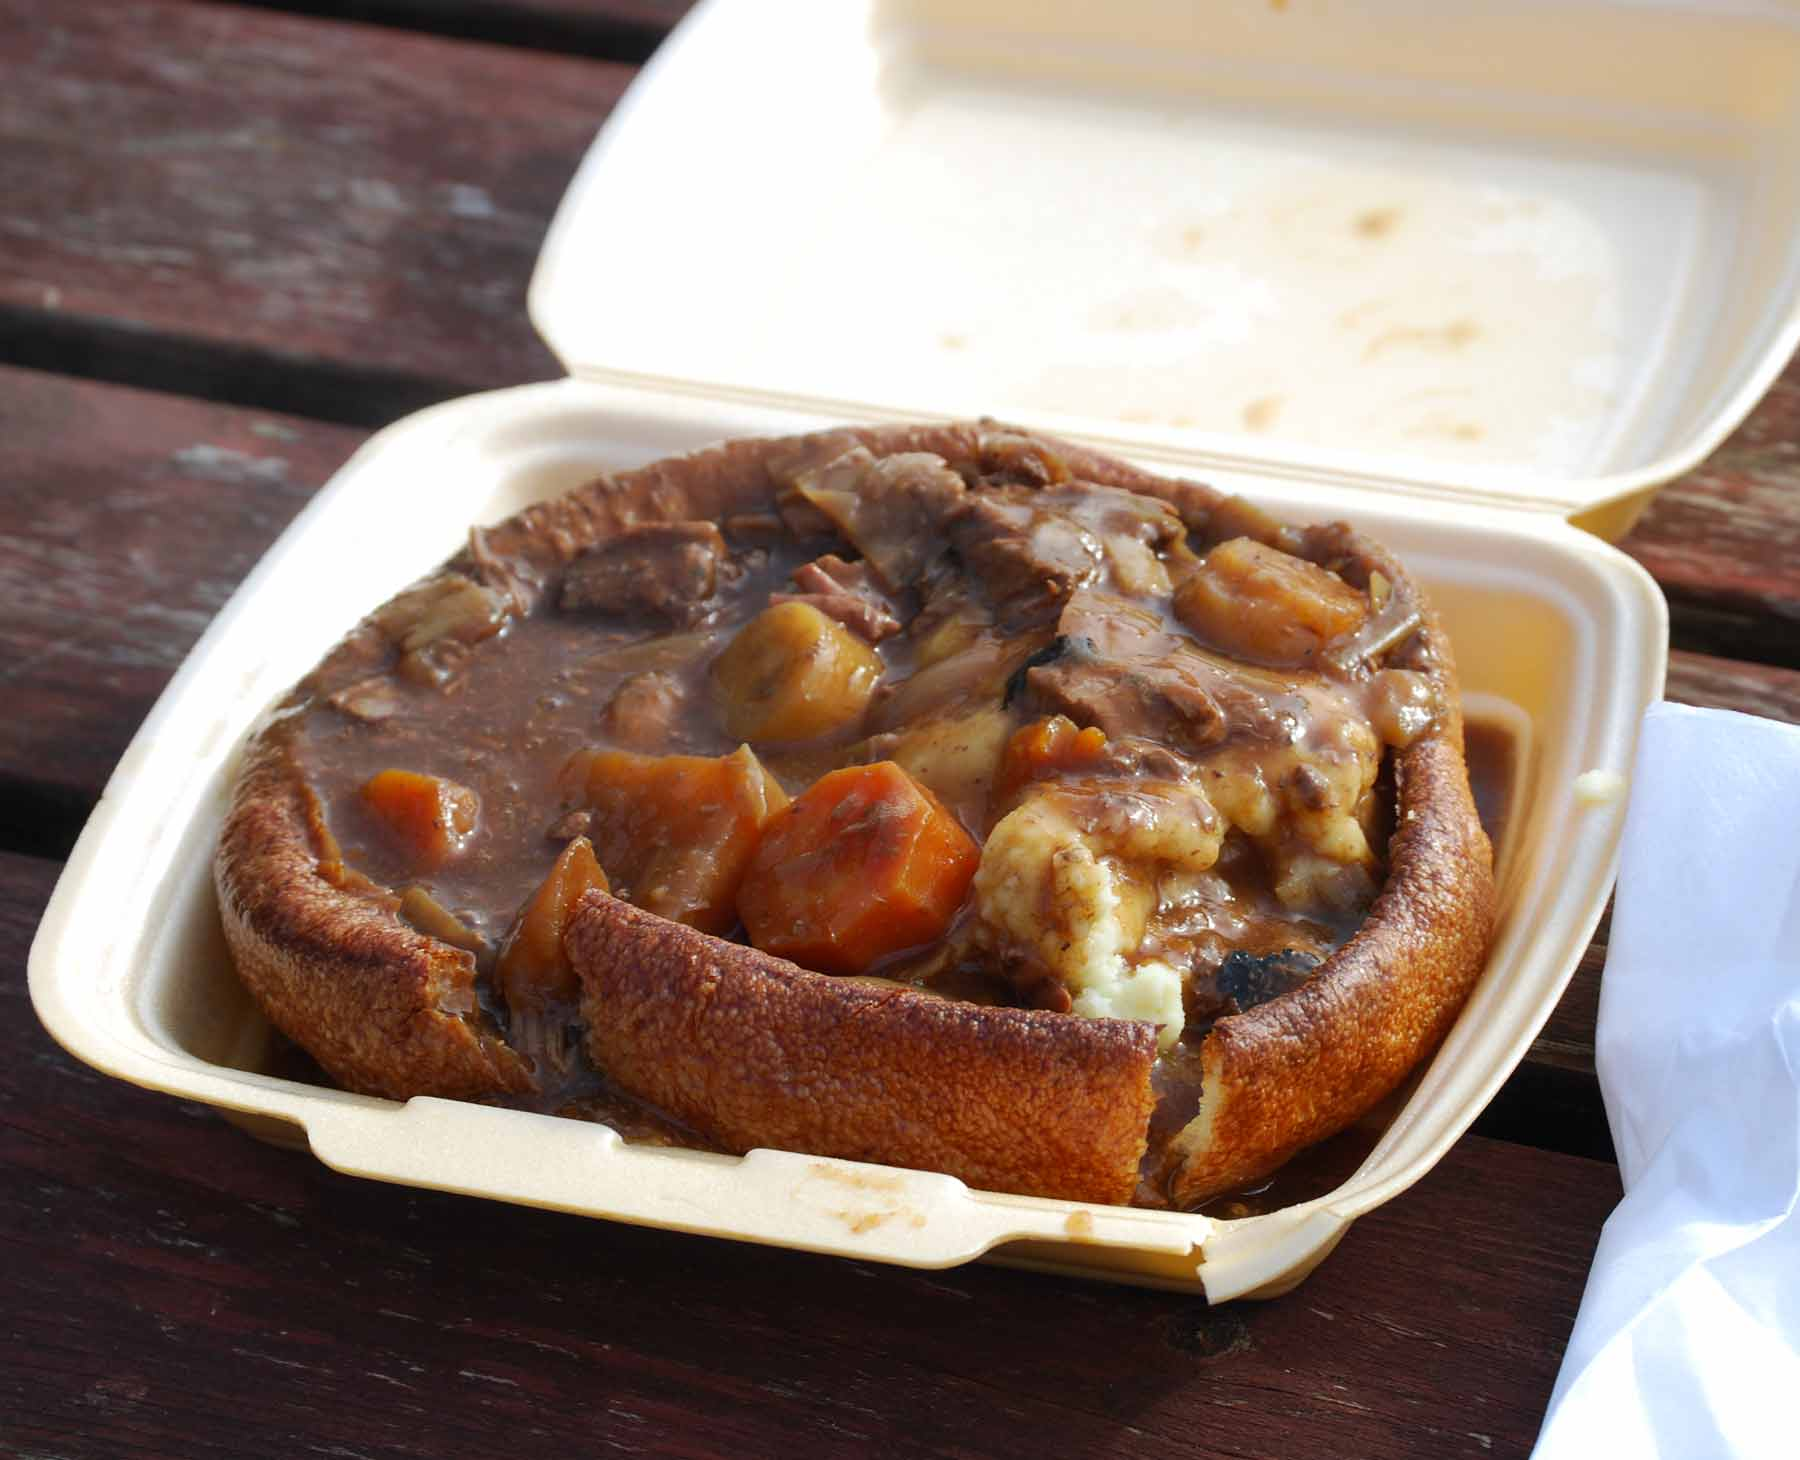 A large Yorkshire pudding acting as a bowl